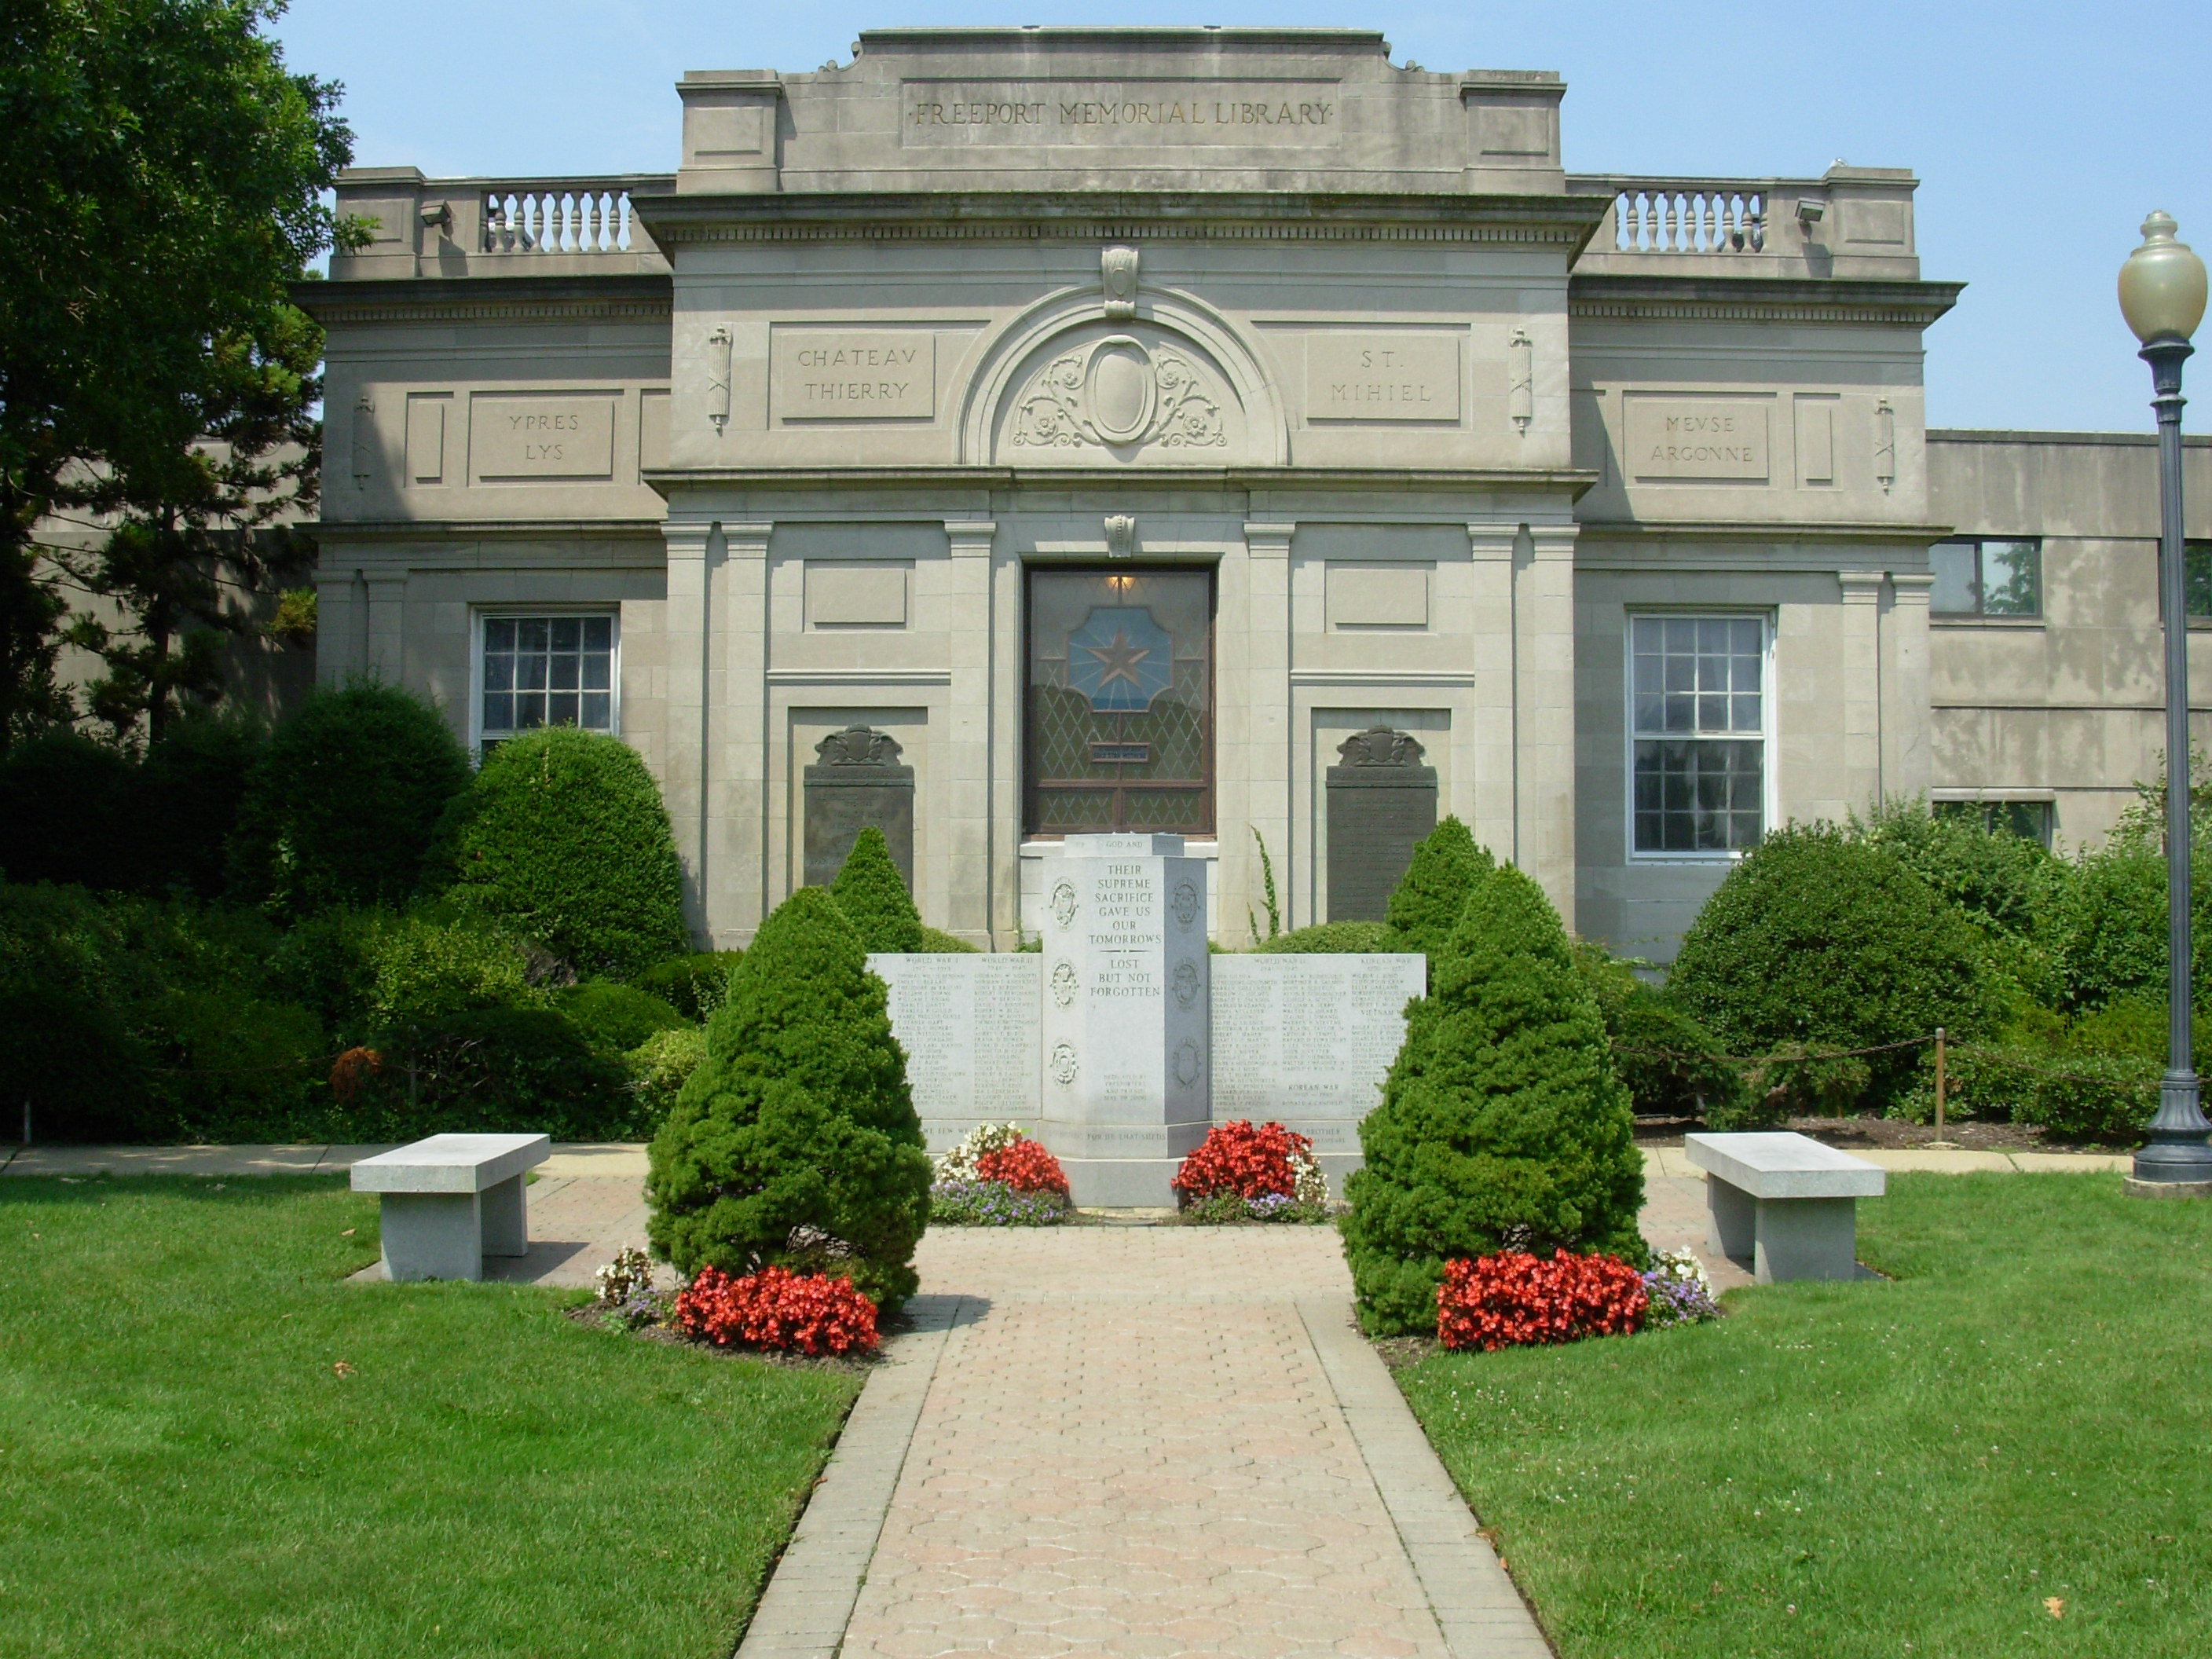 Freeport Memorial Library